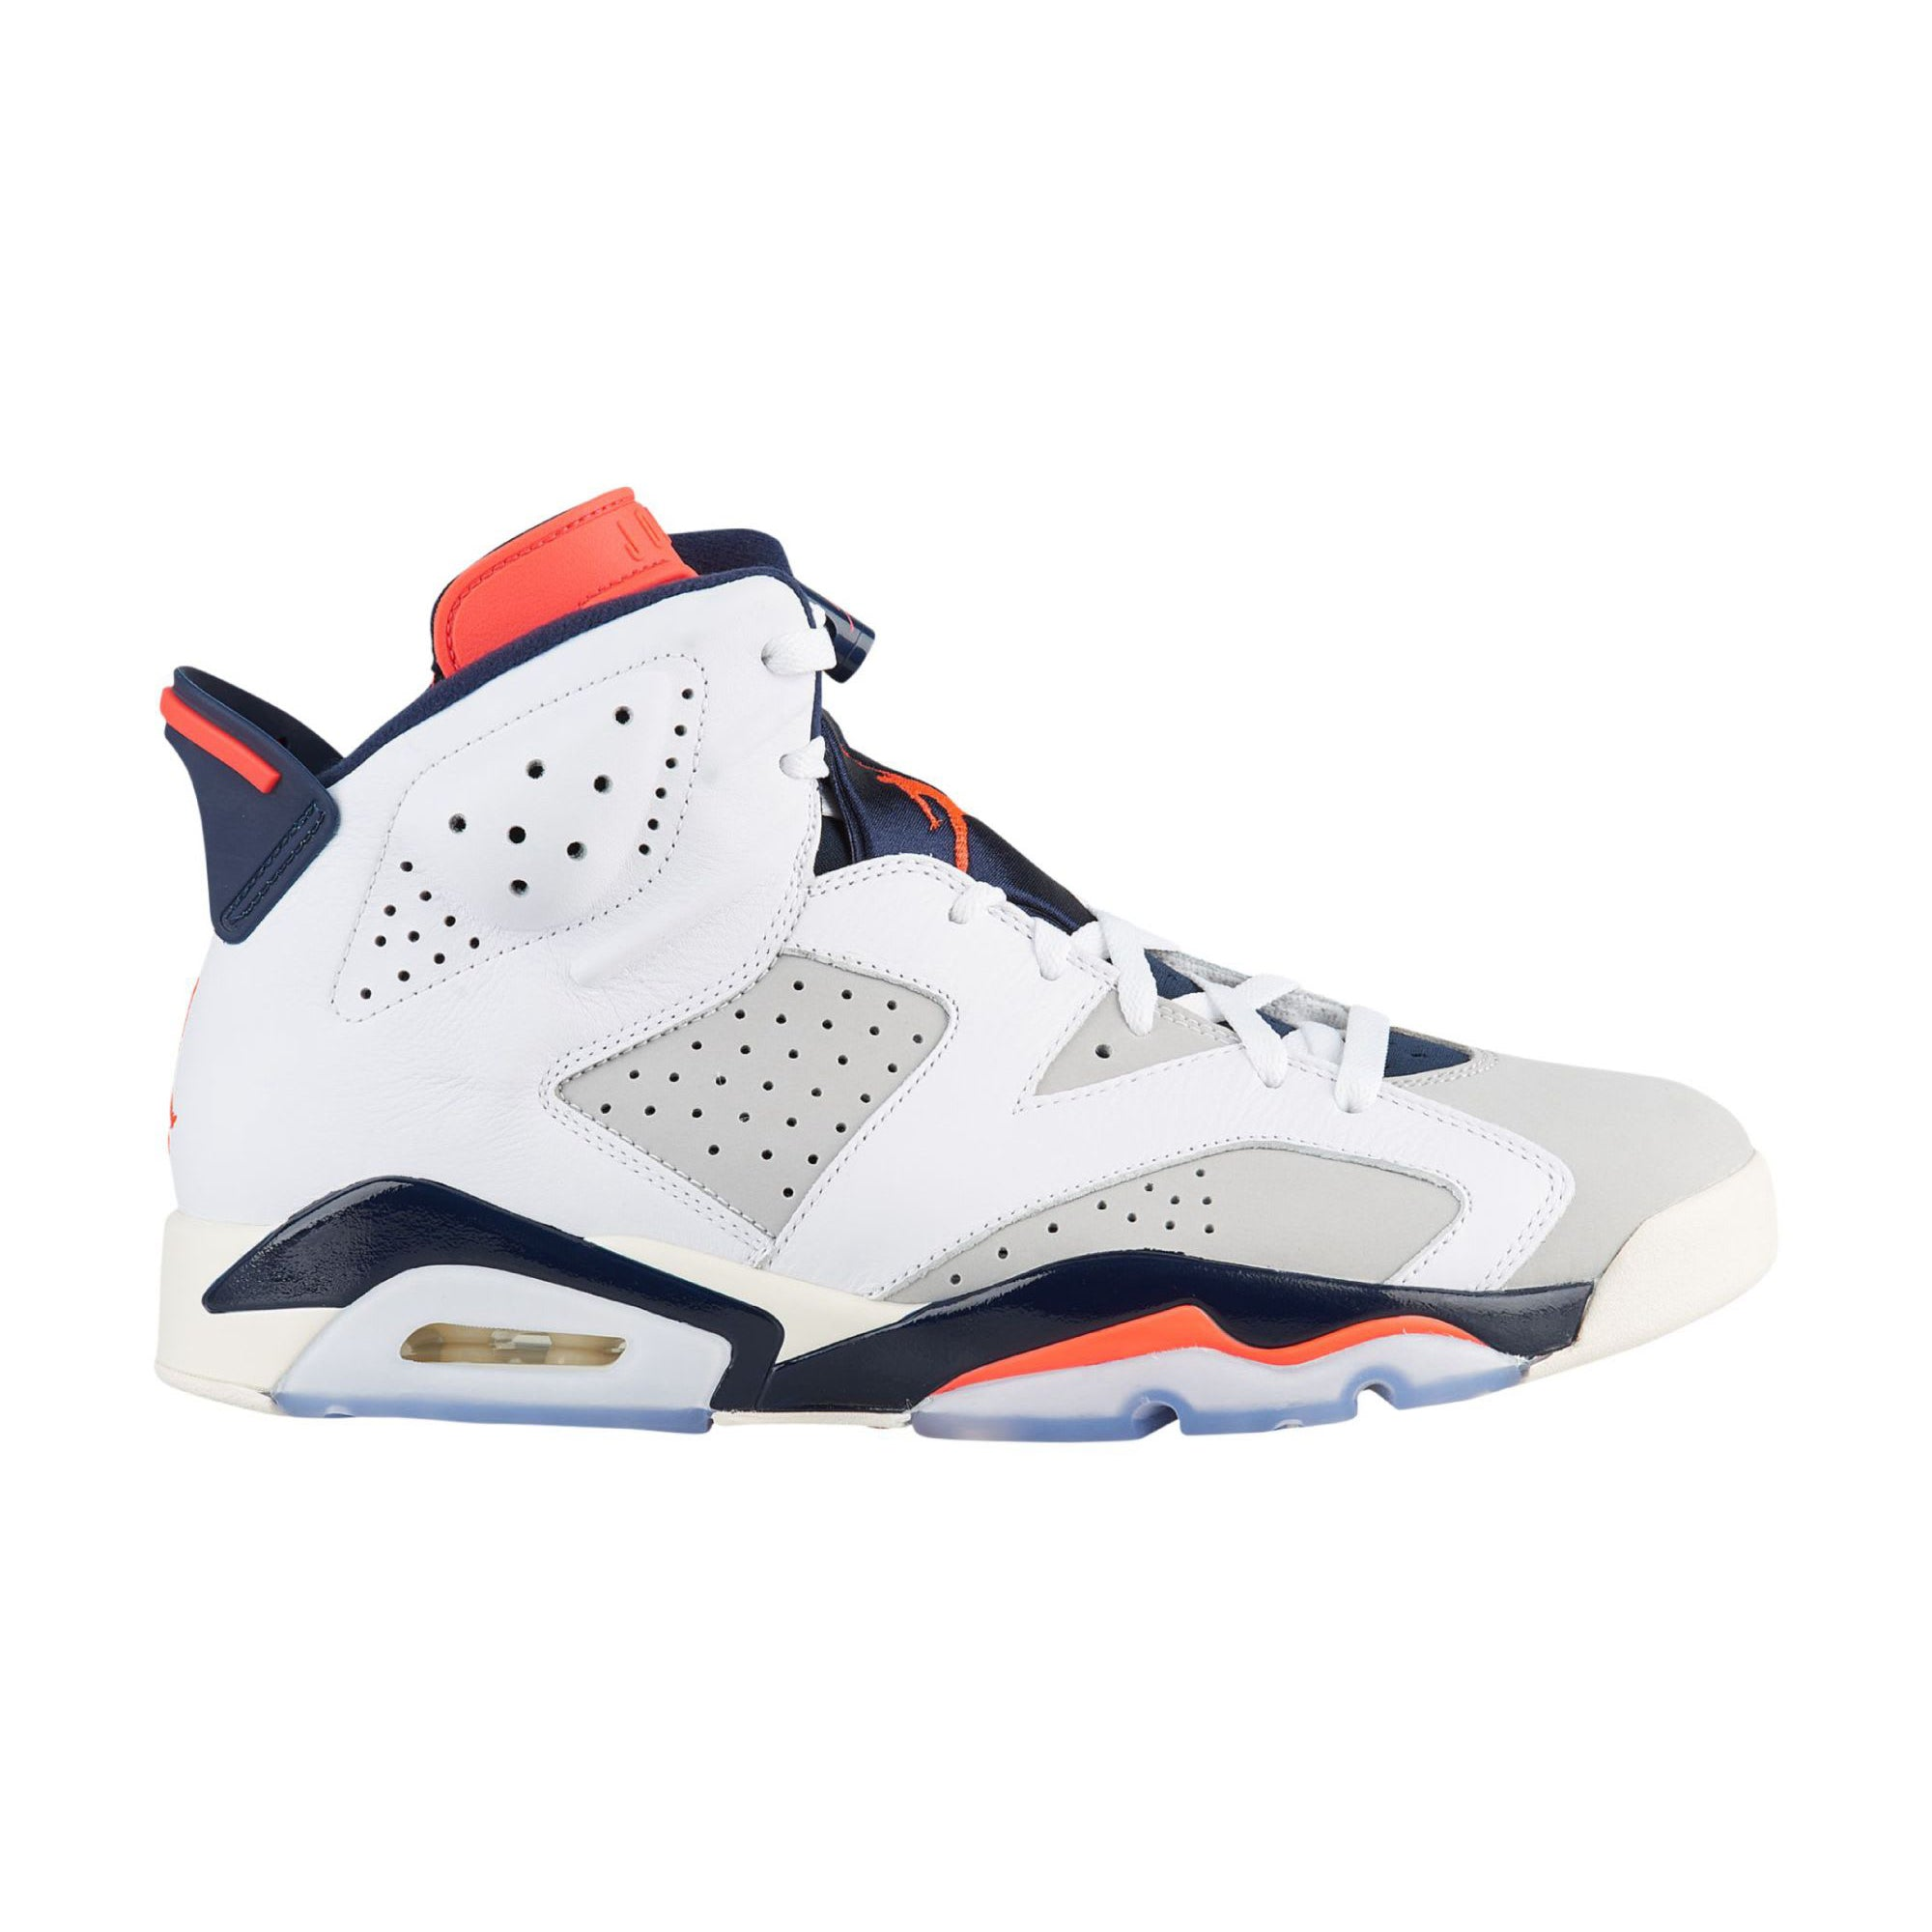 reputable site 6de49 ba4f6 Nike Air Jordan 6 Retro BG (GS) WHITE INFRARED 23-NEUTRAL GREY-OBSIDIA  (384665-104)   KIX-FILES